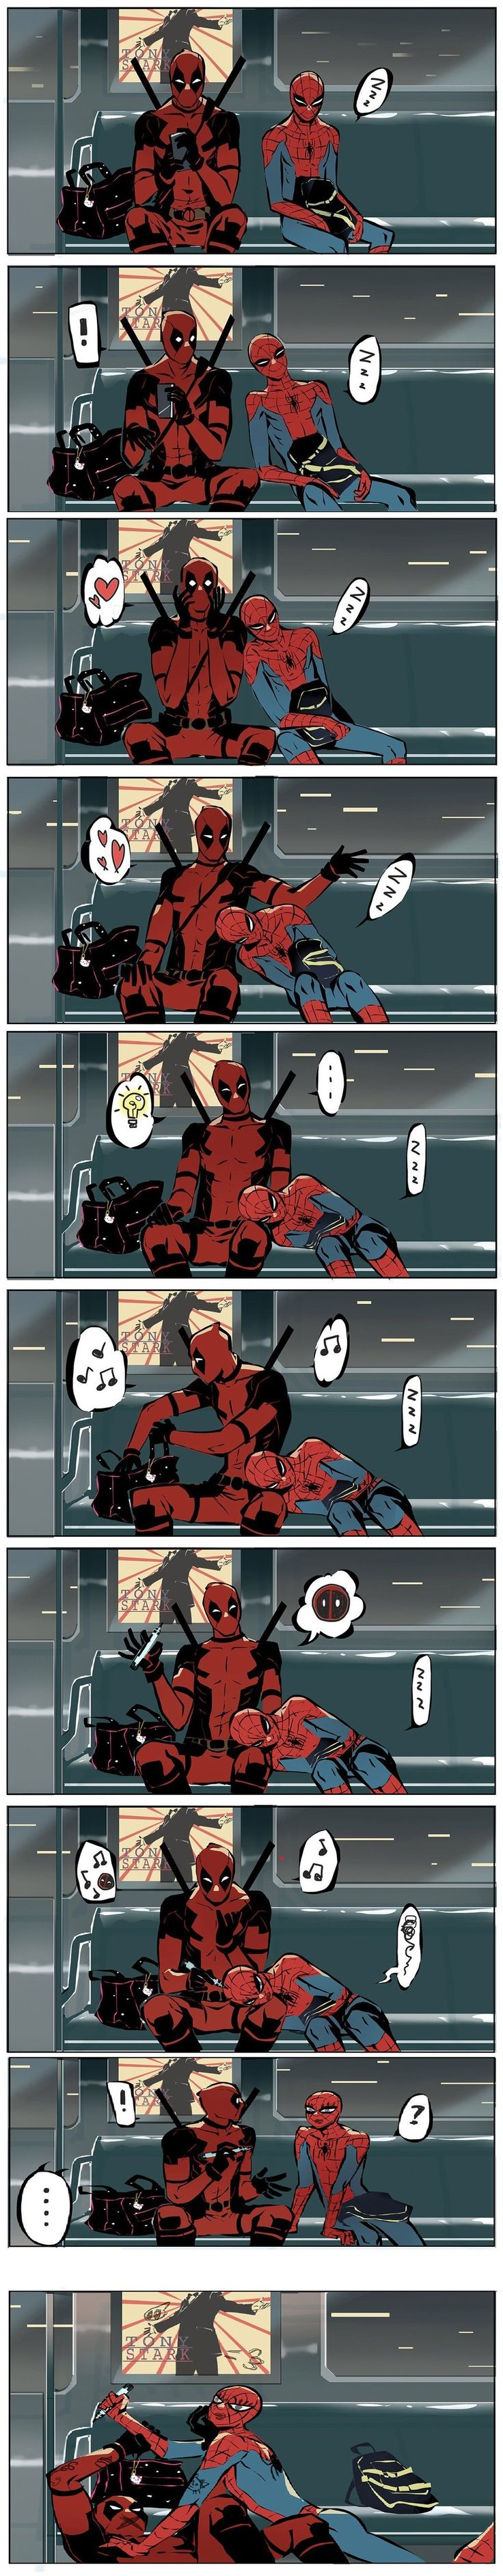 Let me tell ya... If spider man fell asleep in Deadpool's lap then Deadpool sure wouldn't be drawing on his face. Hehehe!!!